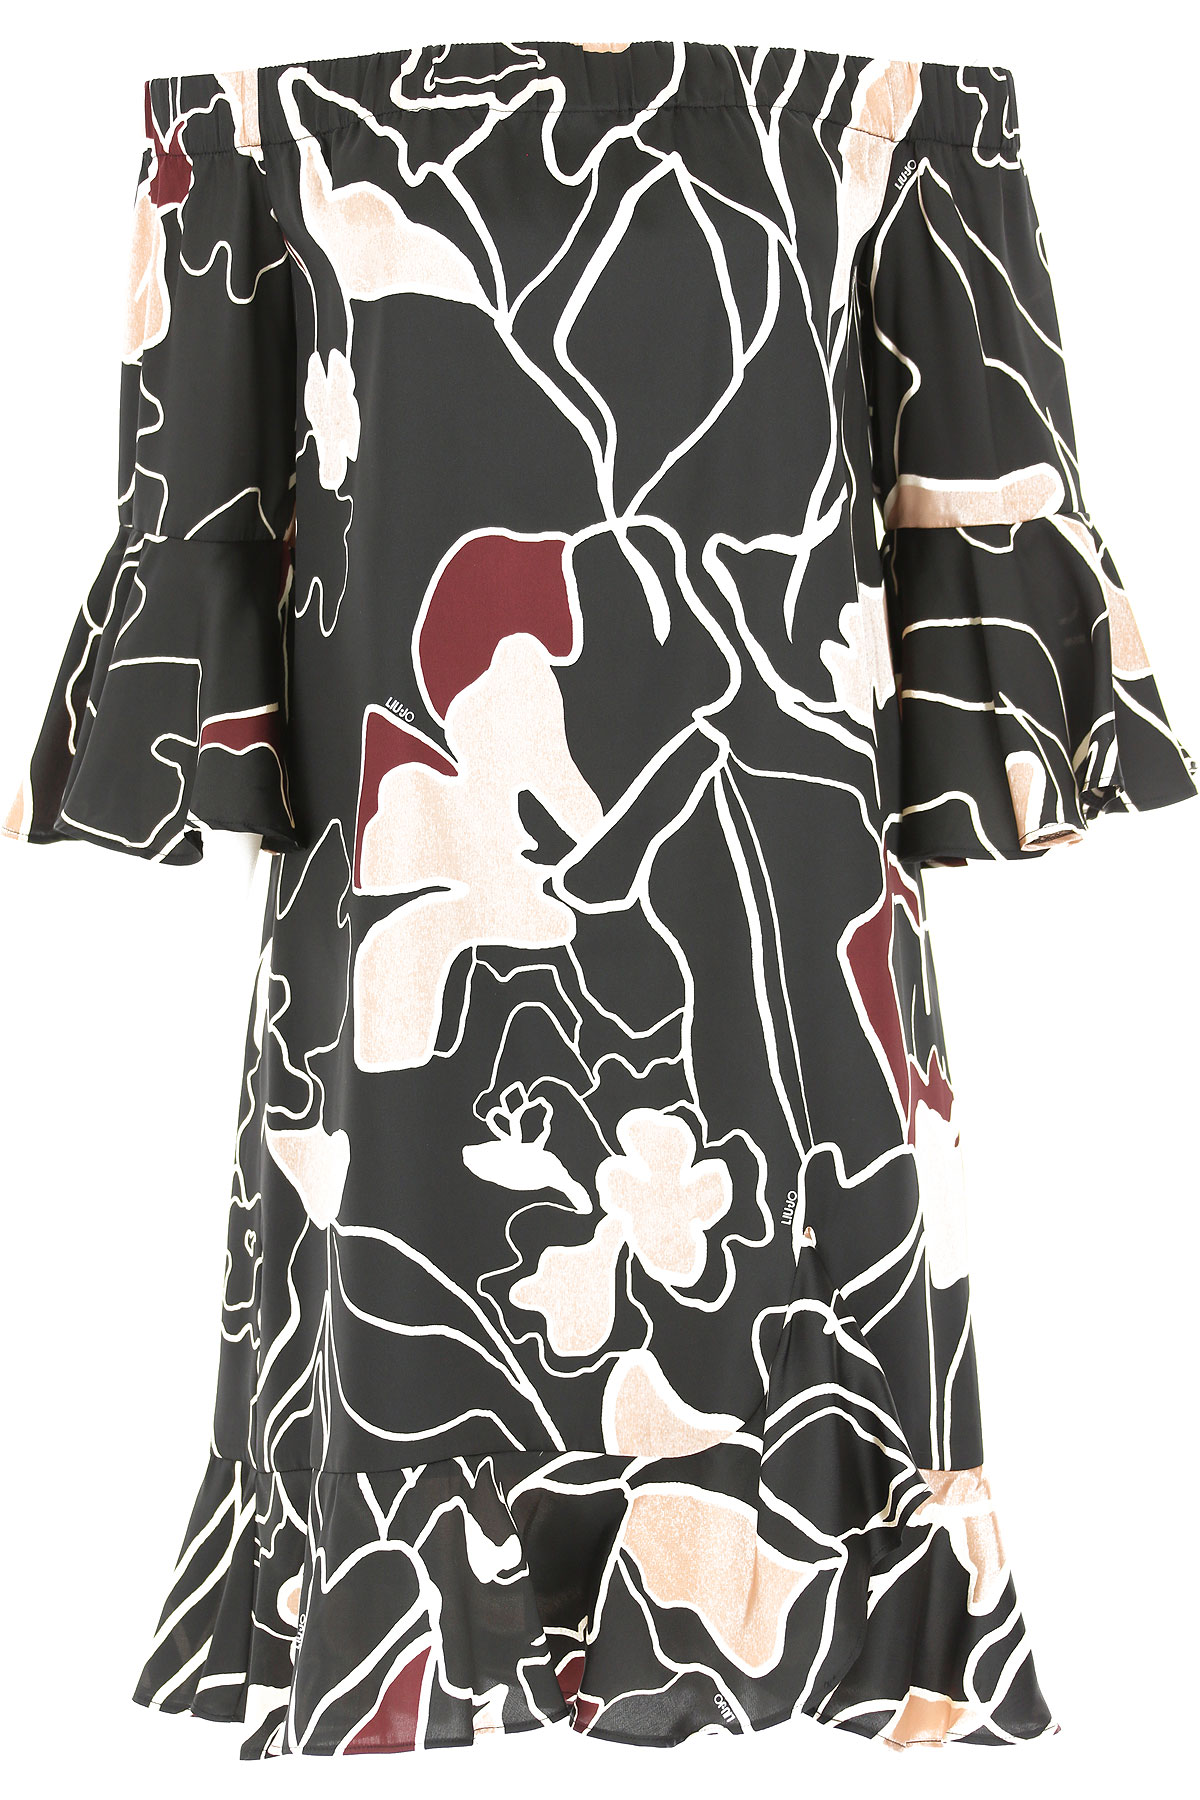 Liu Jo Dress for Women, Evening Cocktail Party, Black, polyestere, 2017, 4 6